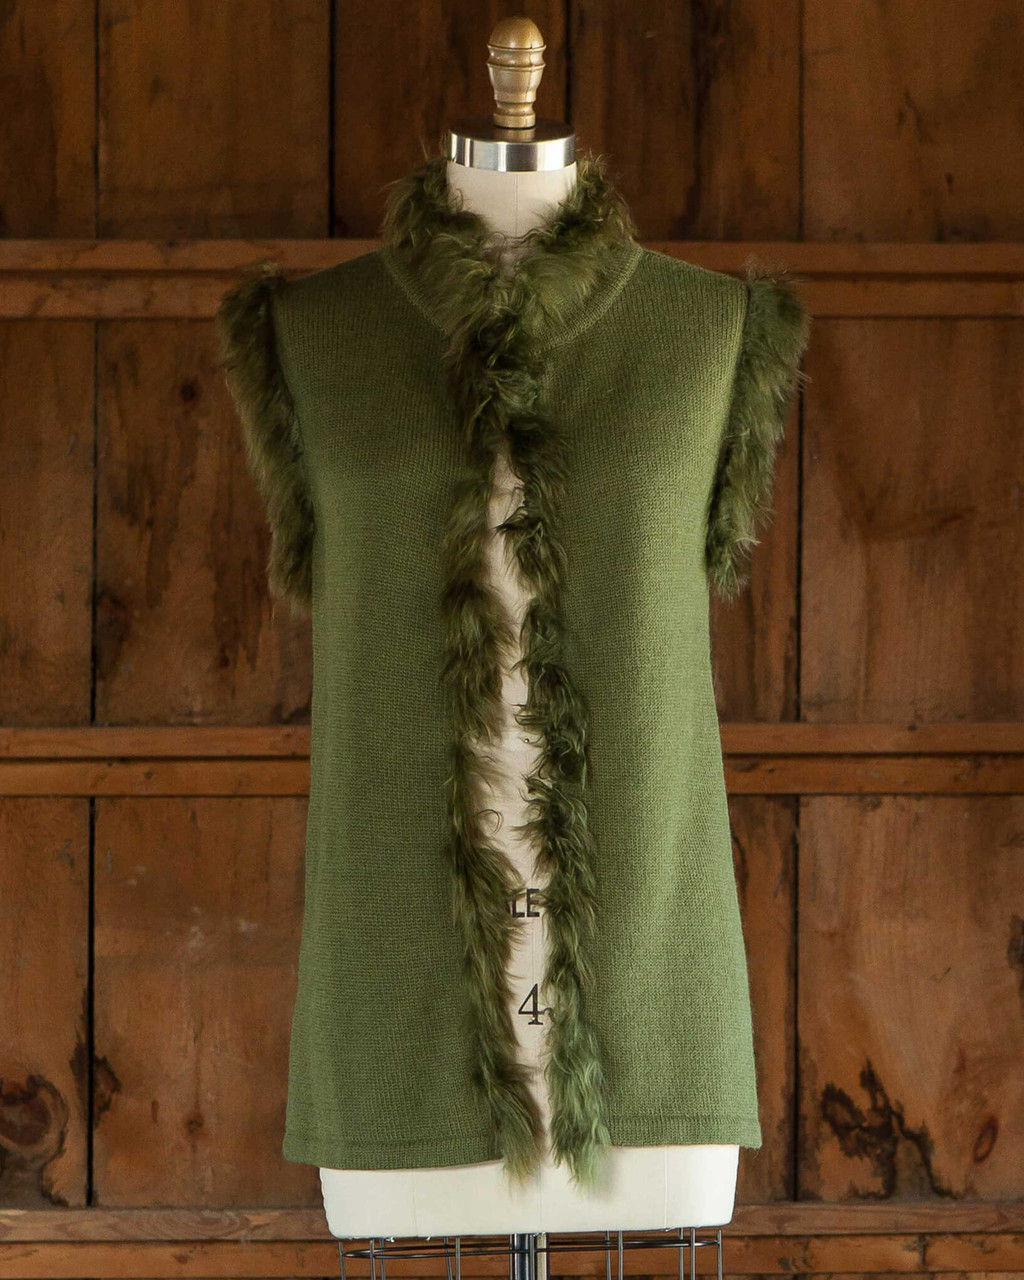 Alicia Adams Alpaca Fur Trimmed Vest, alpaca fur vest, 100 baby alpaca, alpaca sweater, alpaca sweaters womens, hunter green alpaca fur trimmed vest